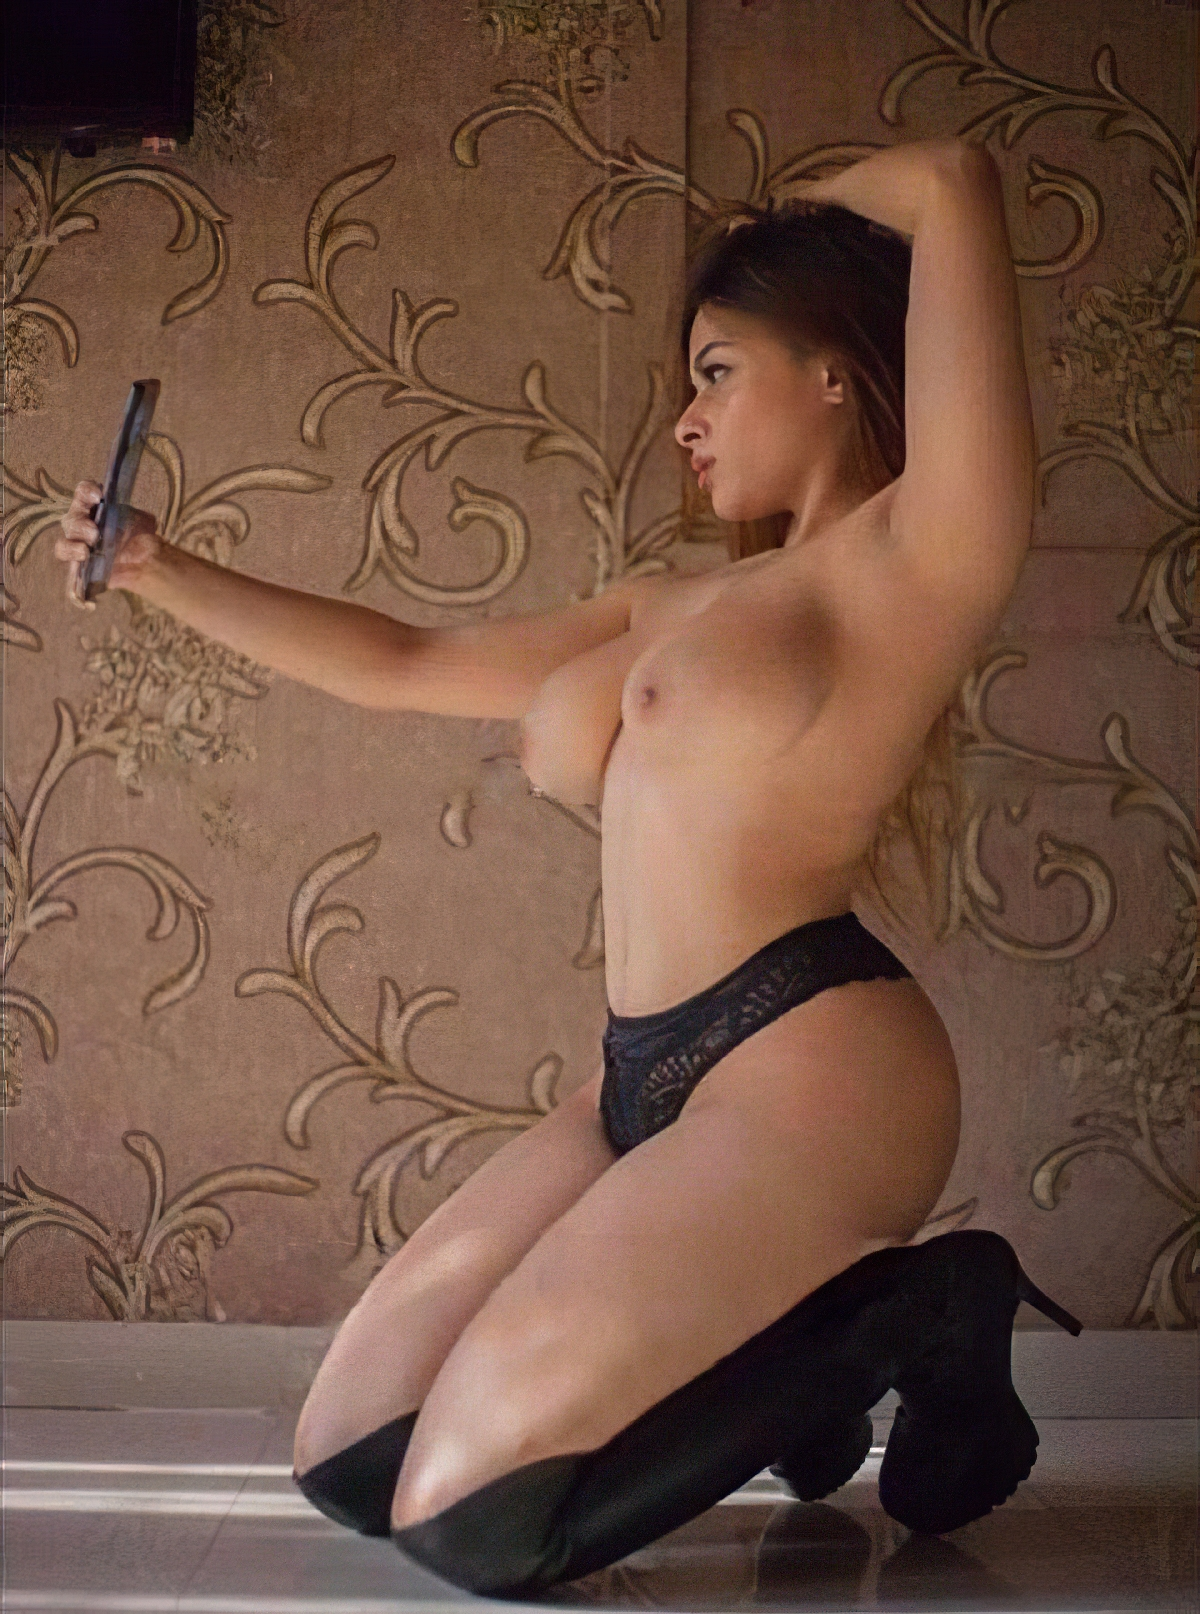 Ashwitha S – Ashwitha4real Onlyfans Nudes Leaks 4